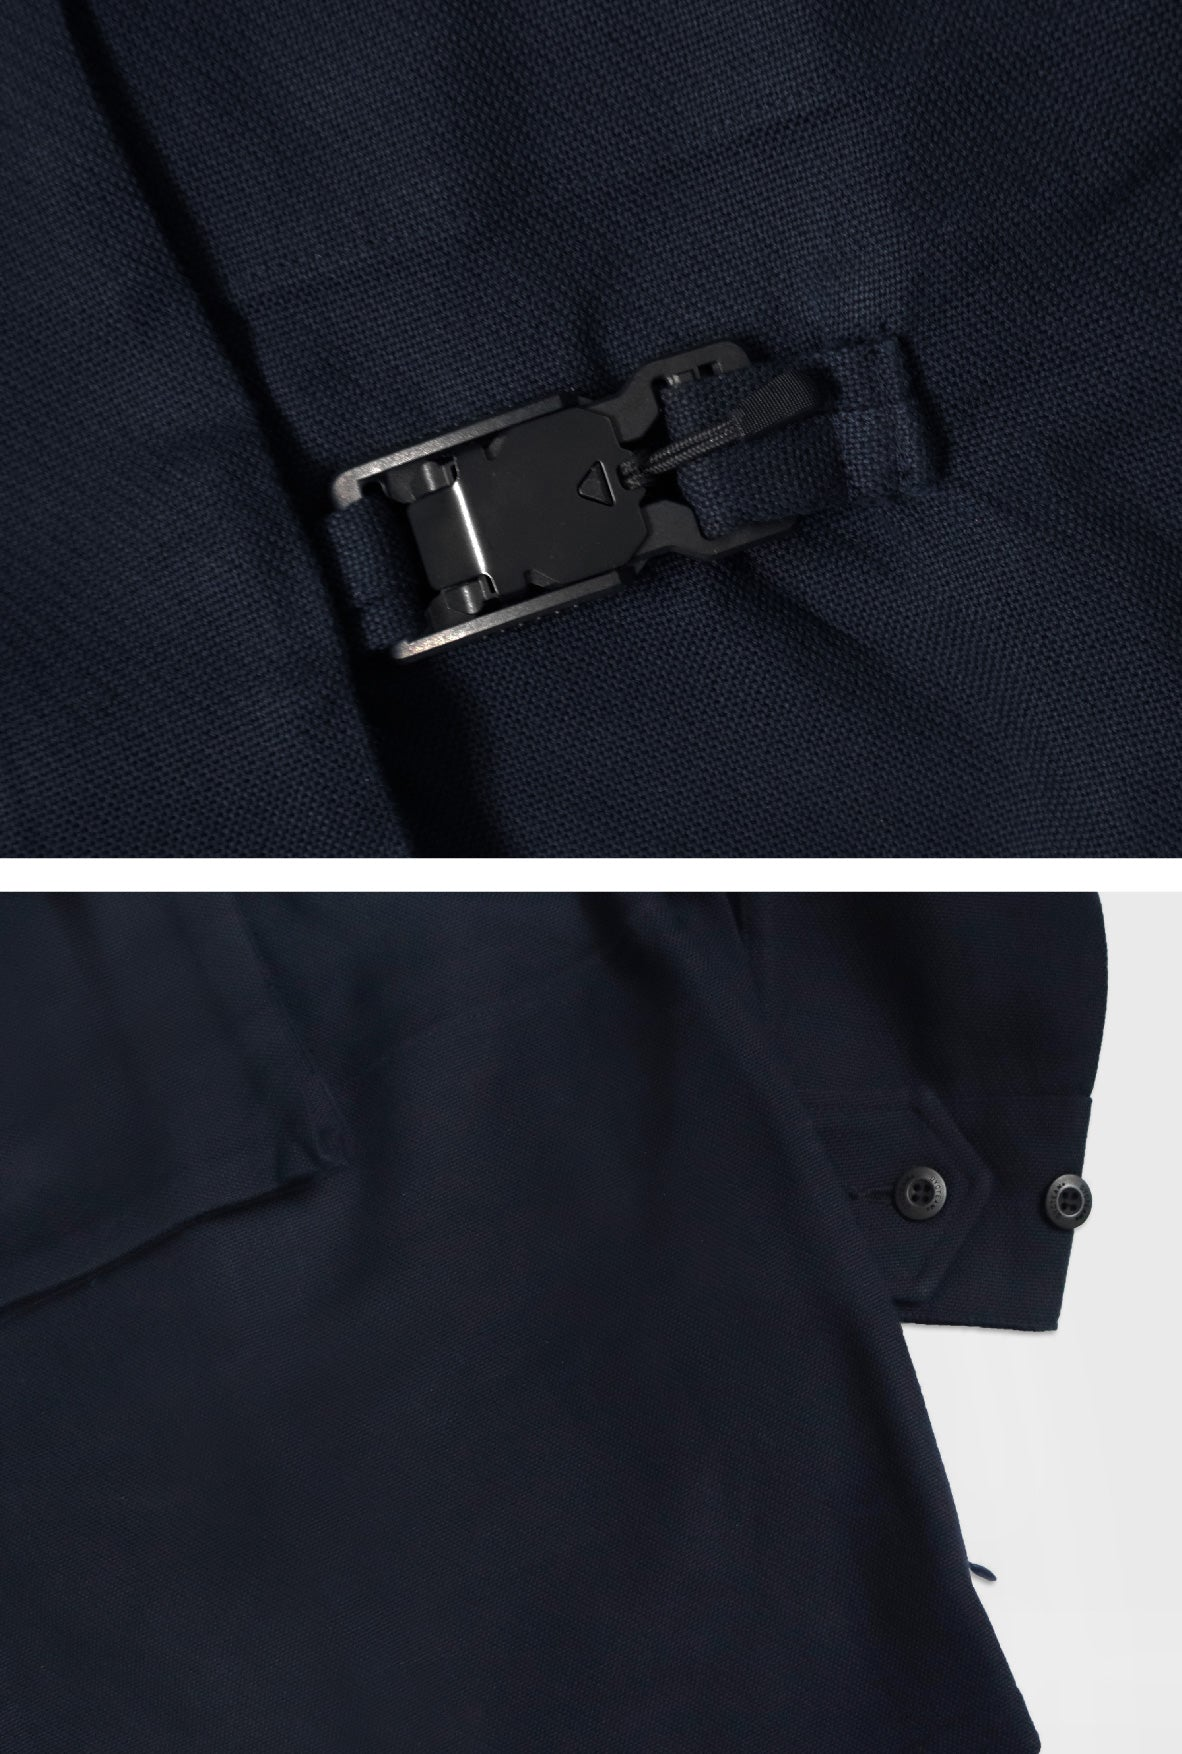 DYCTEAM  Buckle Colarless Jacket / men